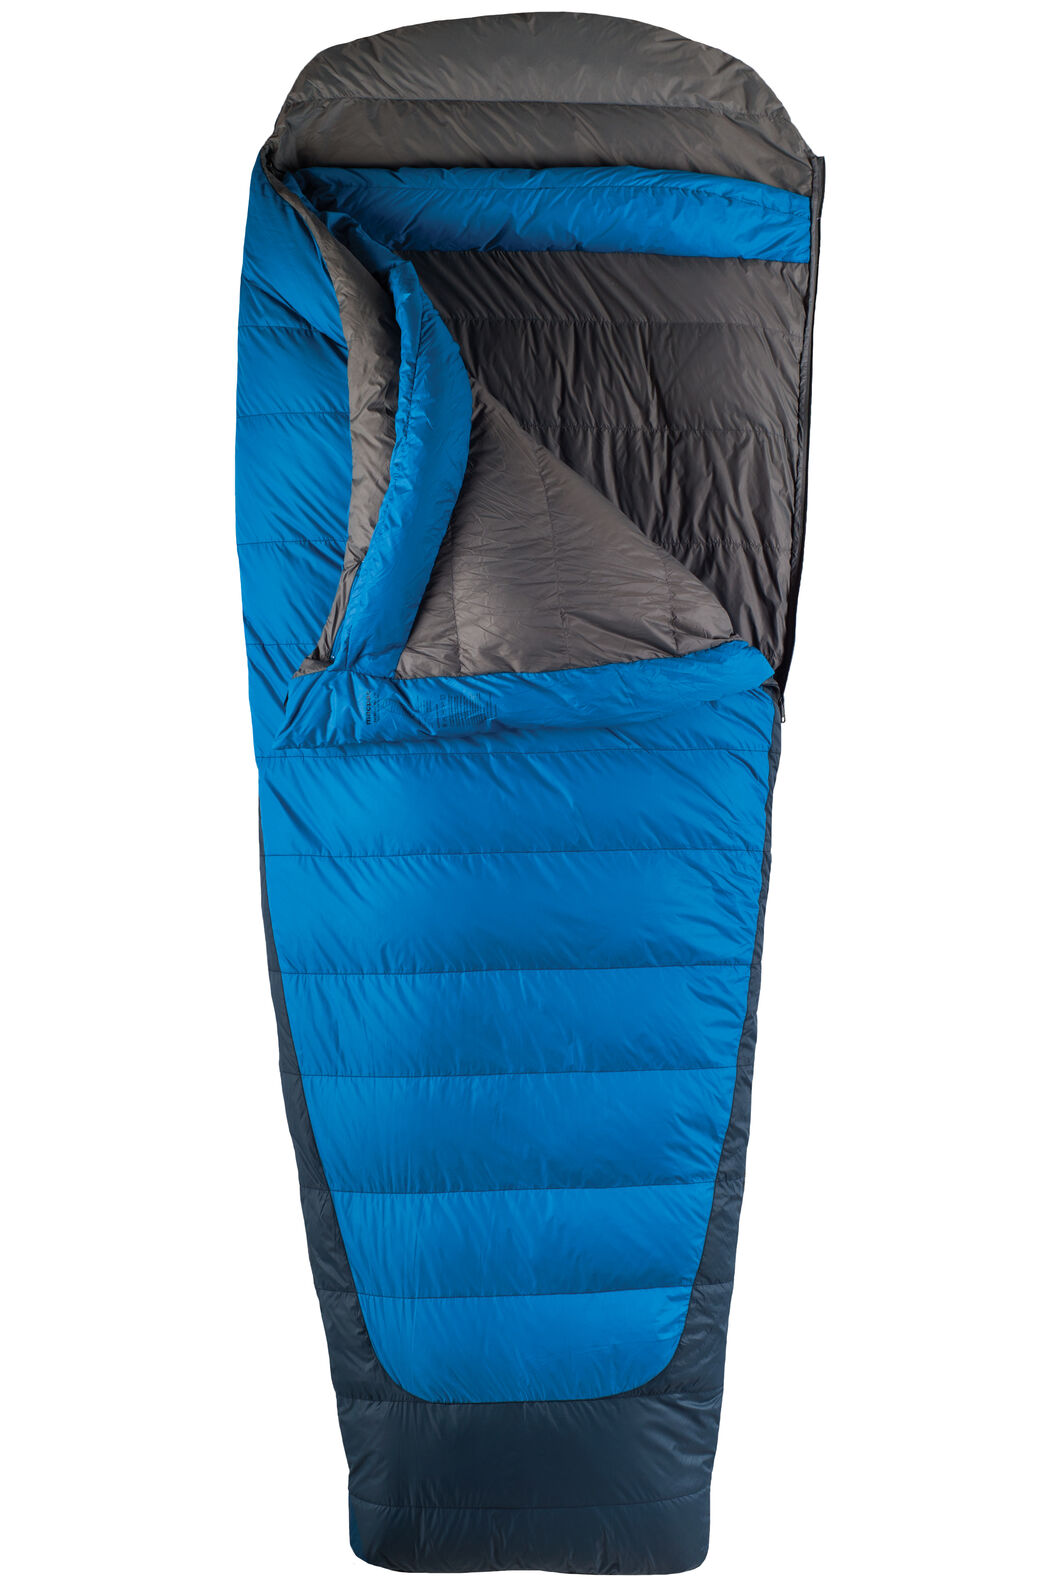 Escapade Down 350 Sleeping Bag - Extra Large, Classic Blue, hi-res